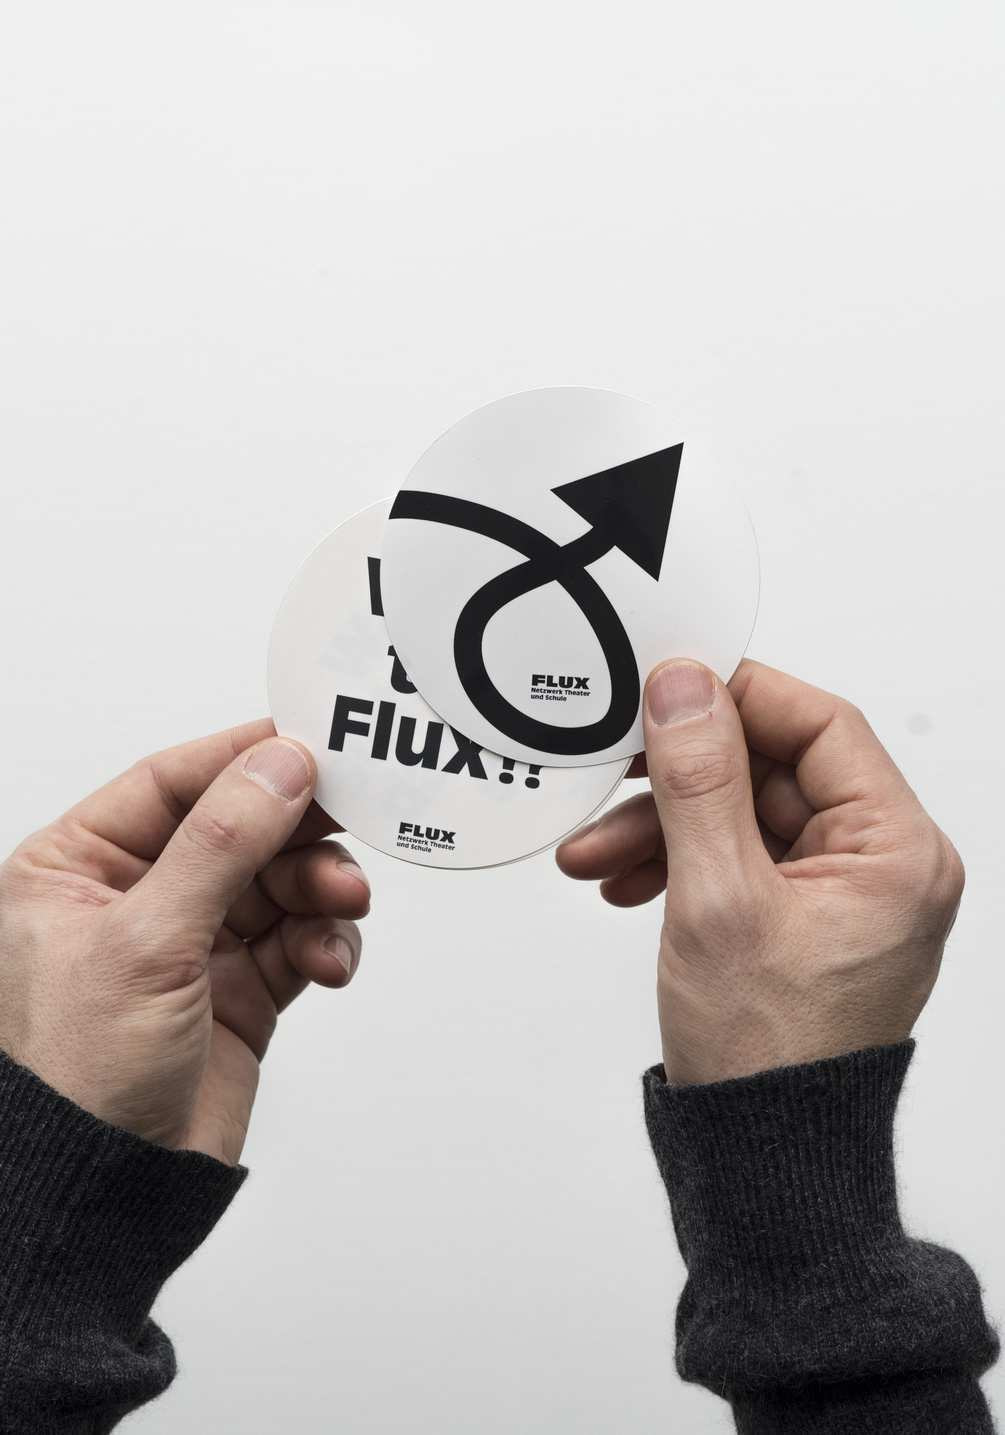 flux-sticker-6-1005x1435px